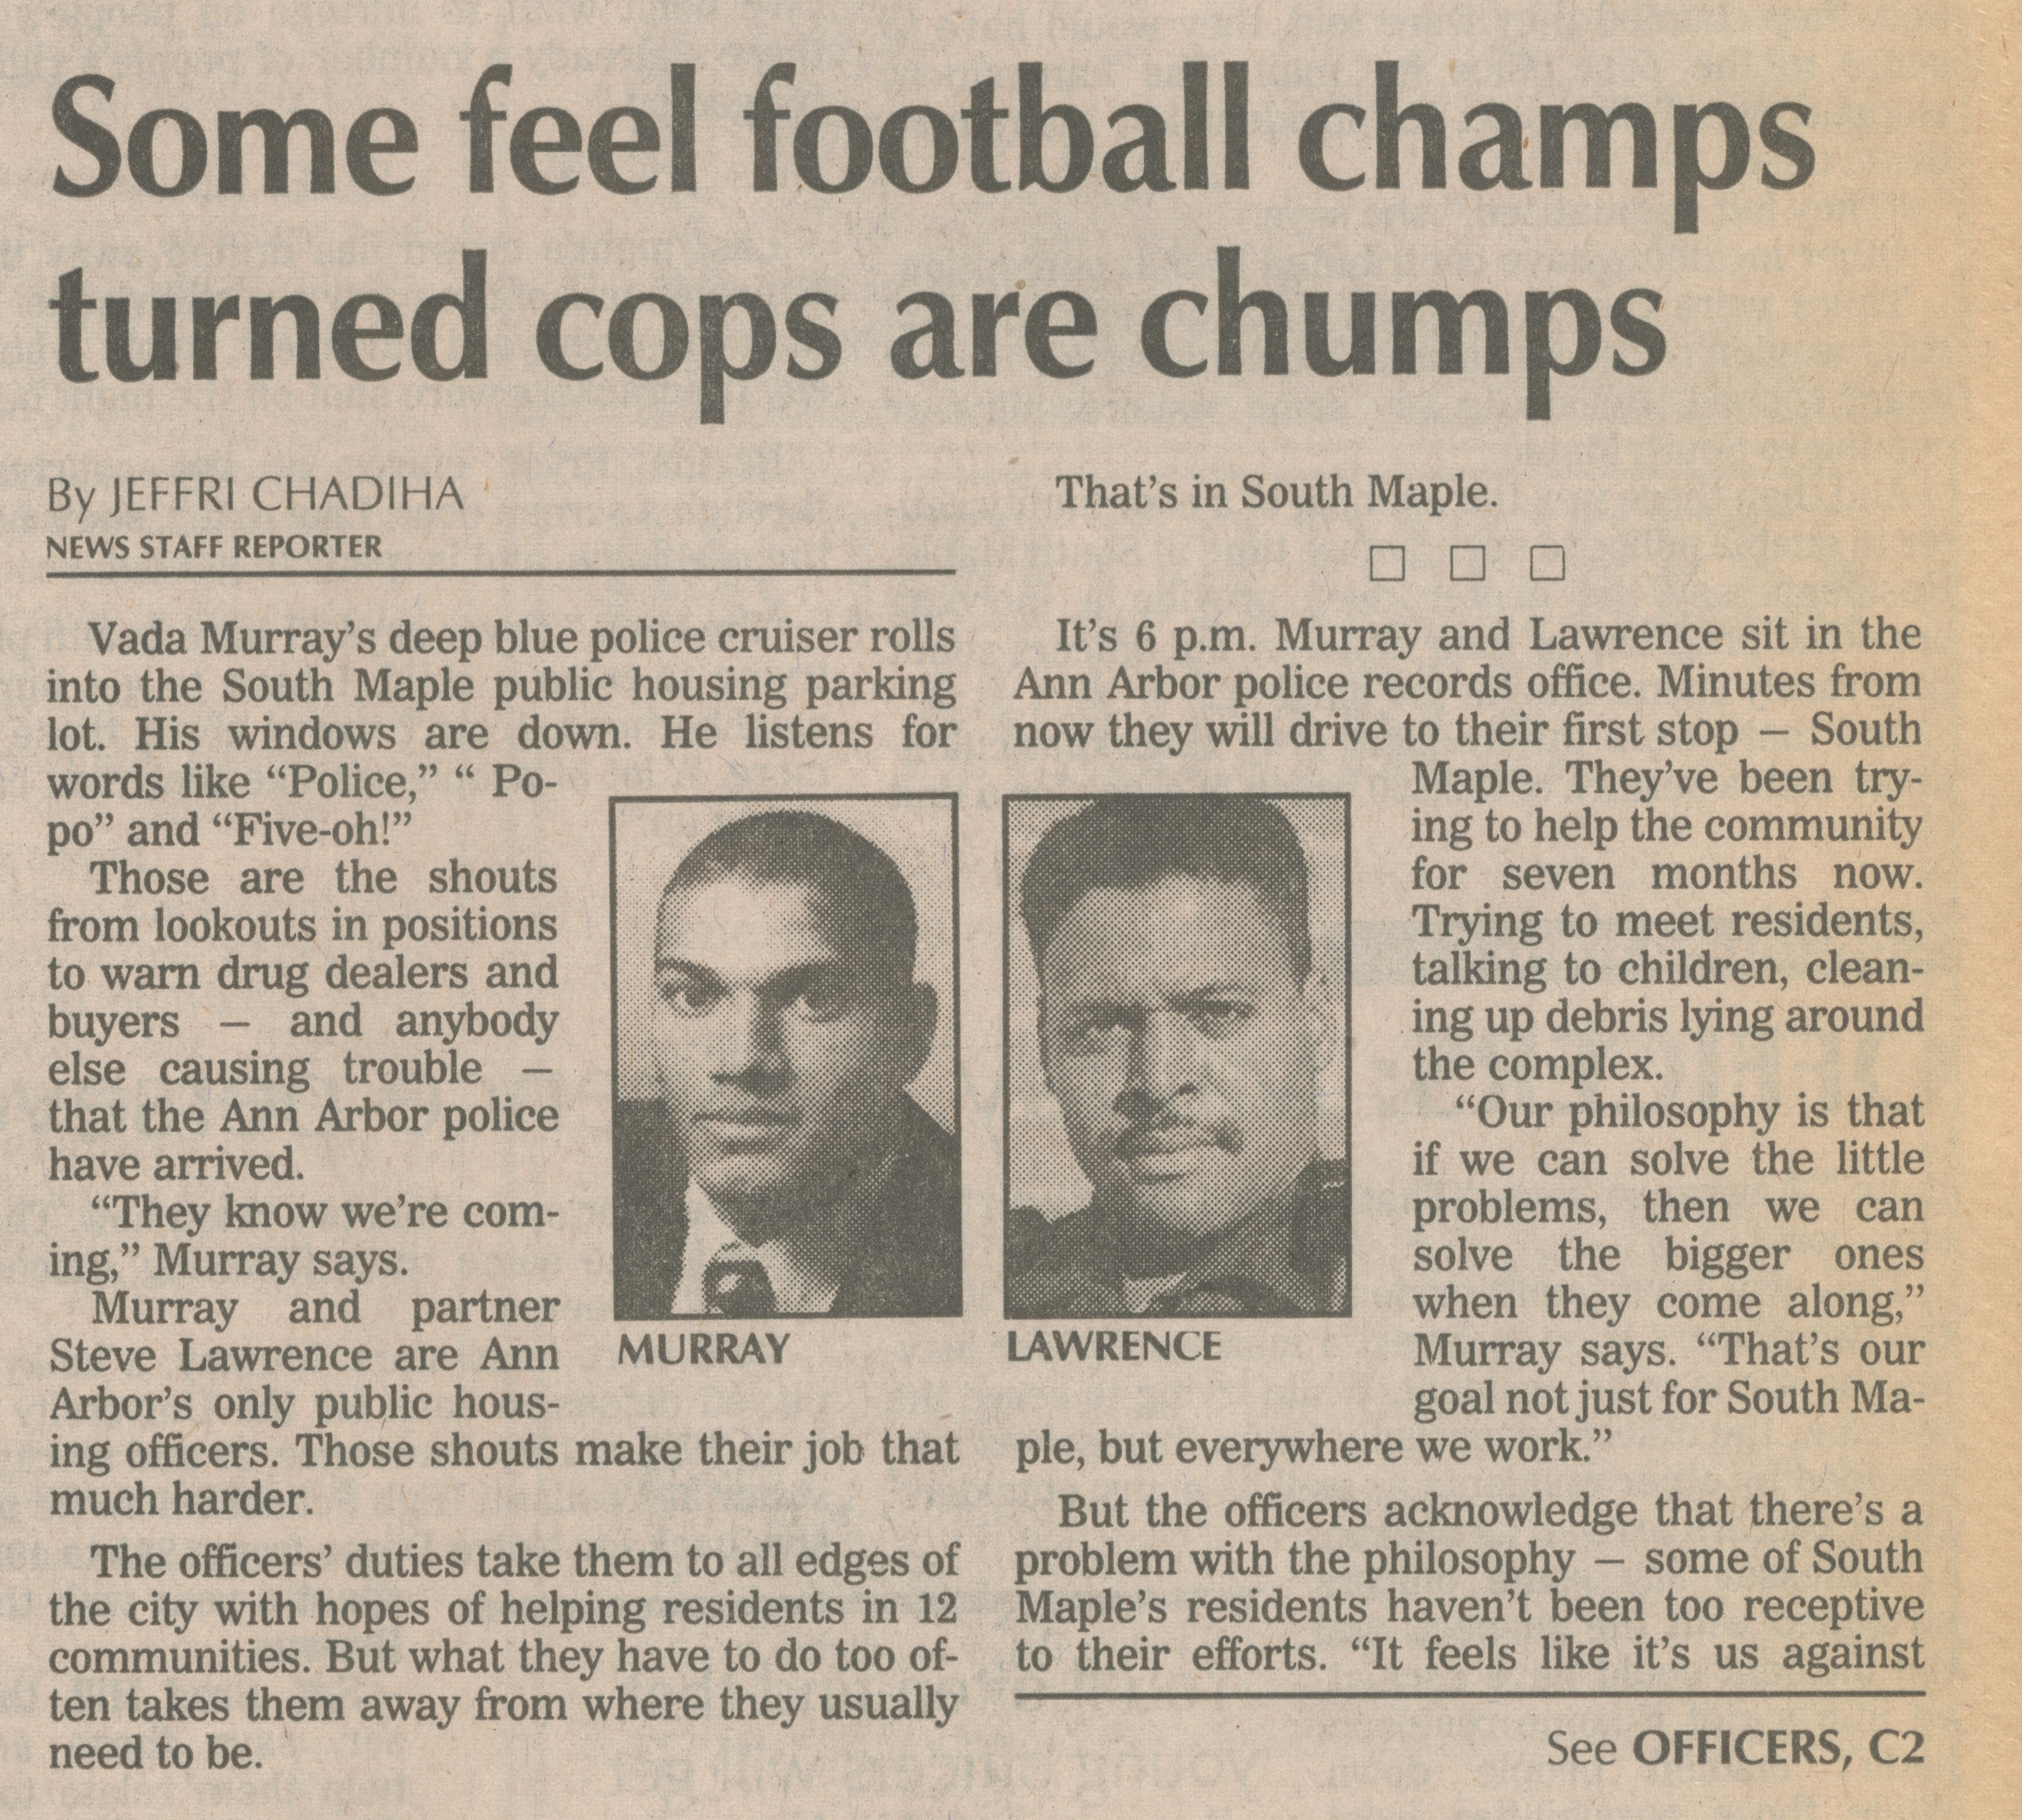 Some Feel Football Champs Turned Cops Are Chumps image